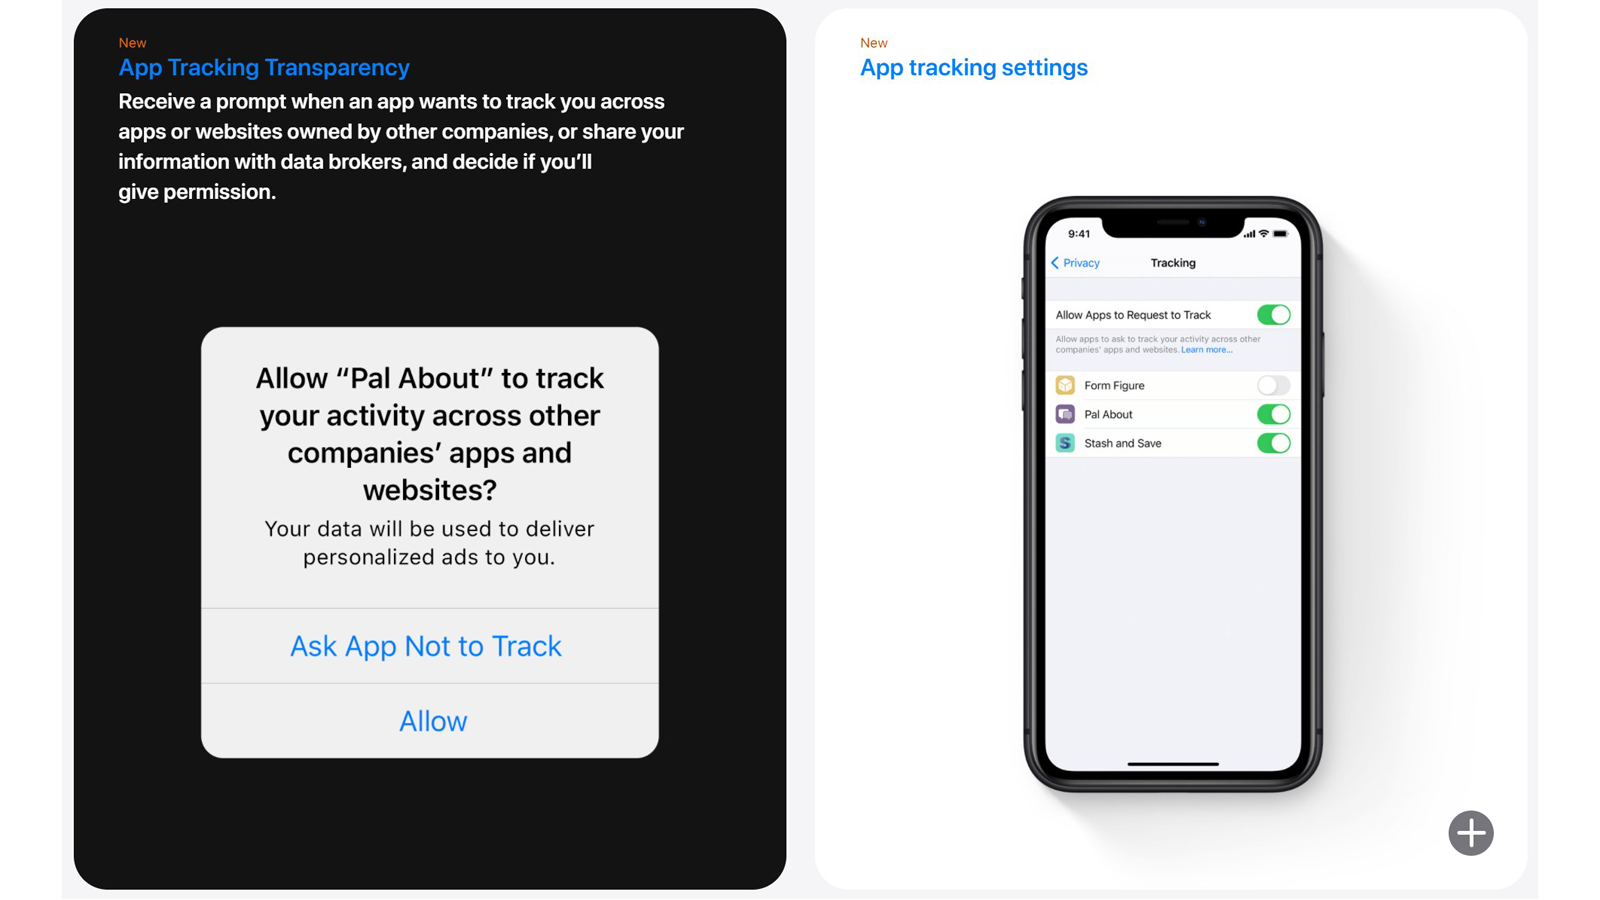 app tracking transparency feature